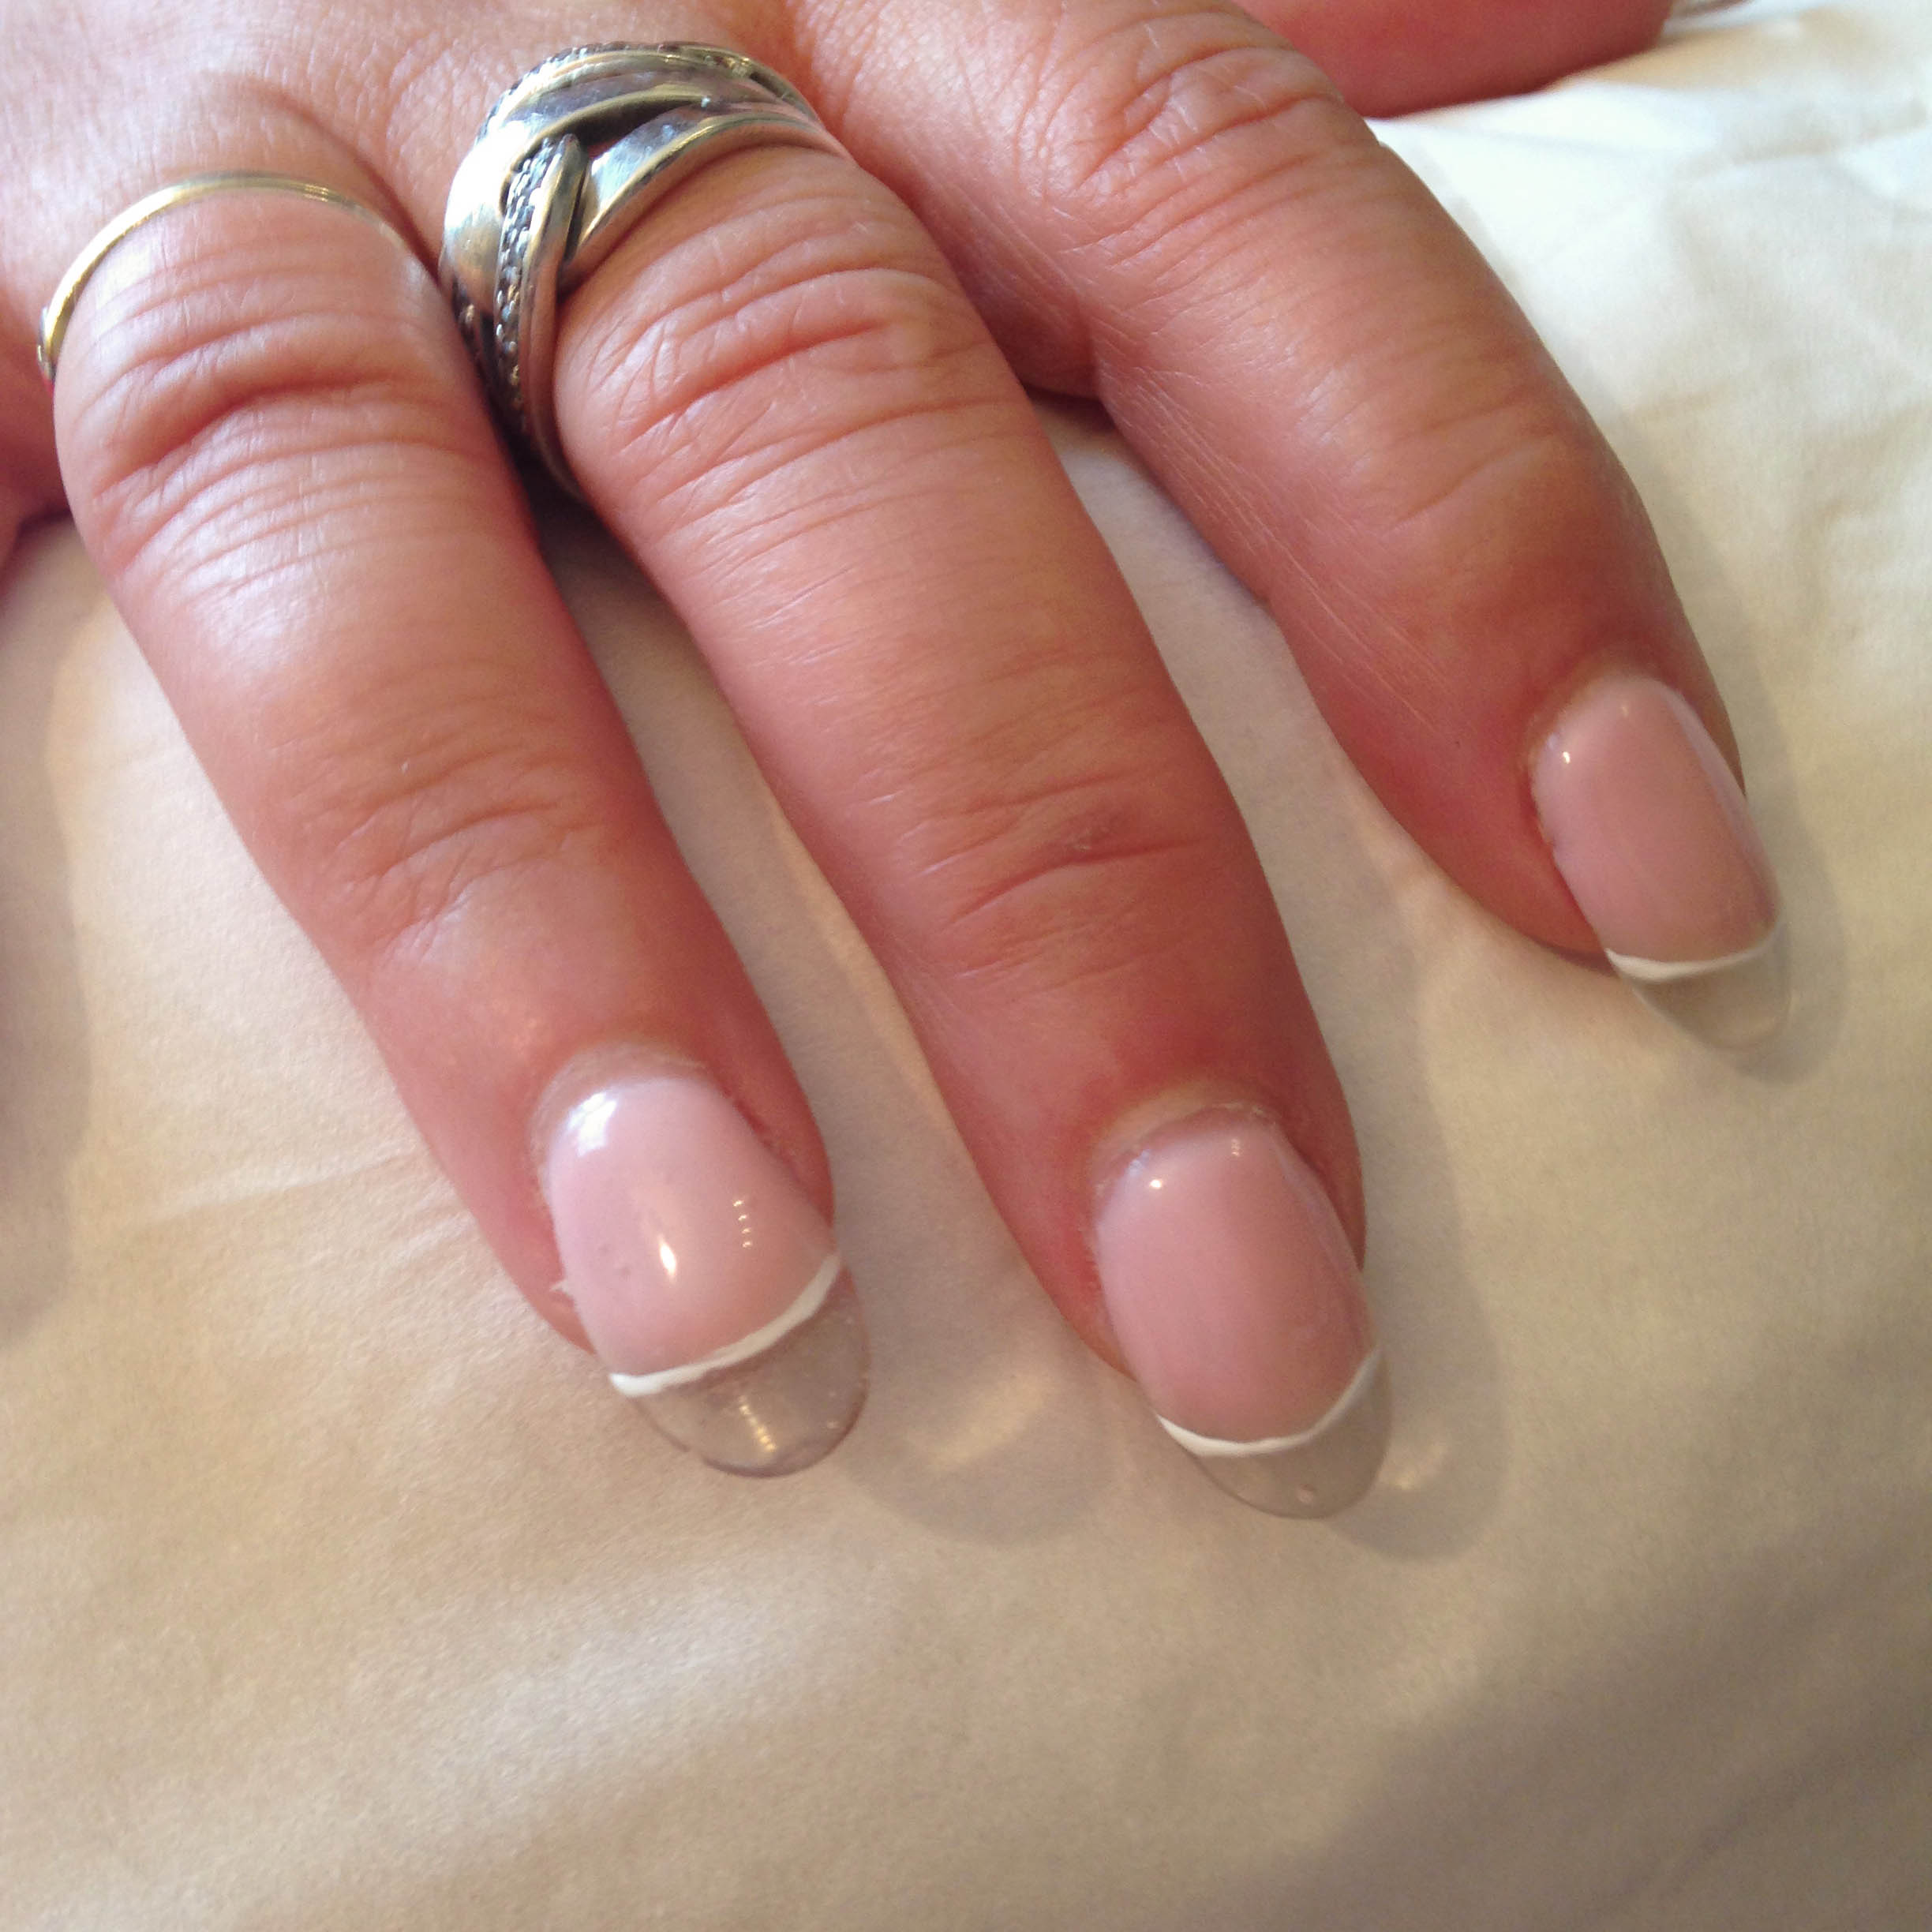 Ongles rose trait blanc